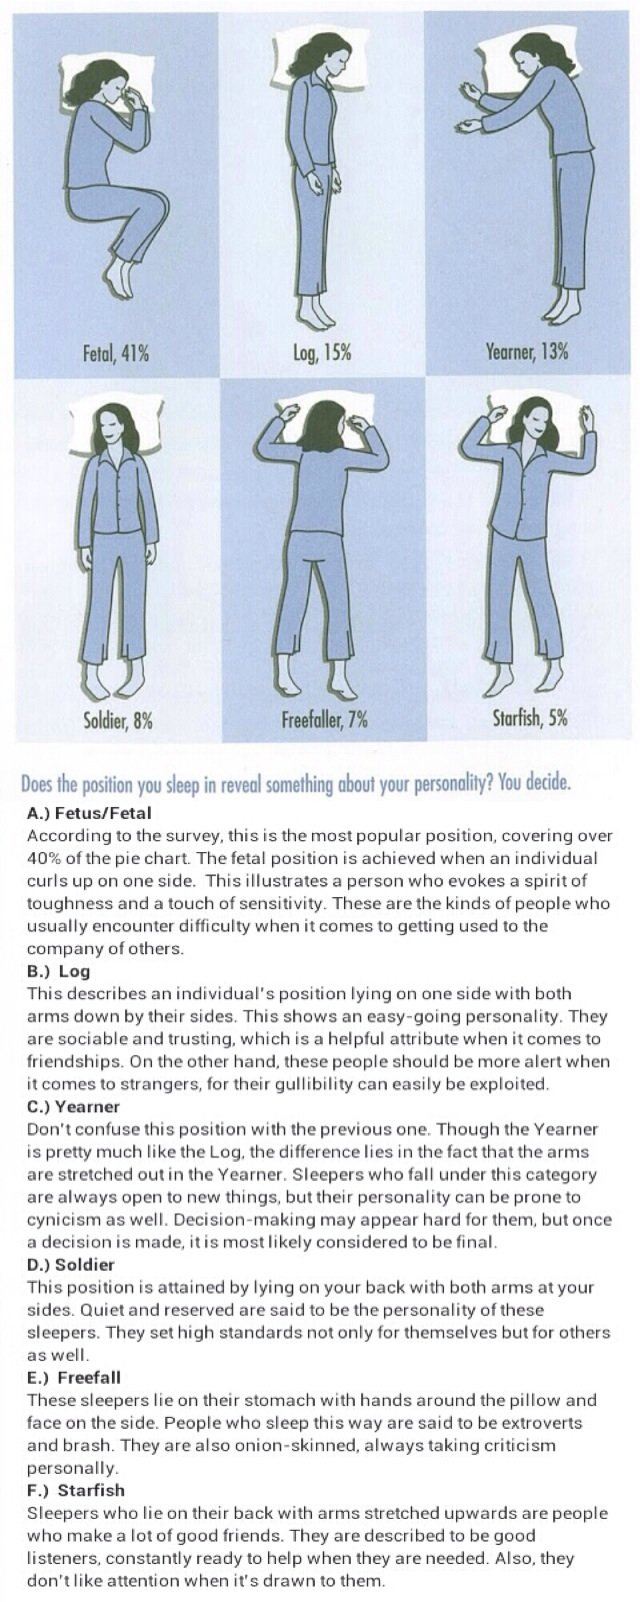 The way you sleep and your personality